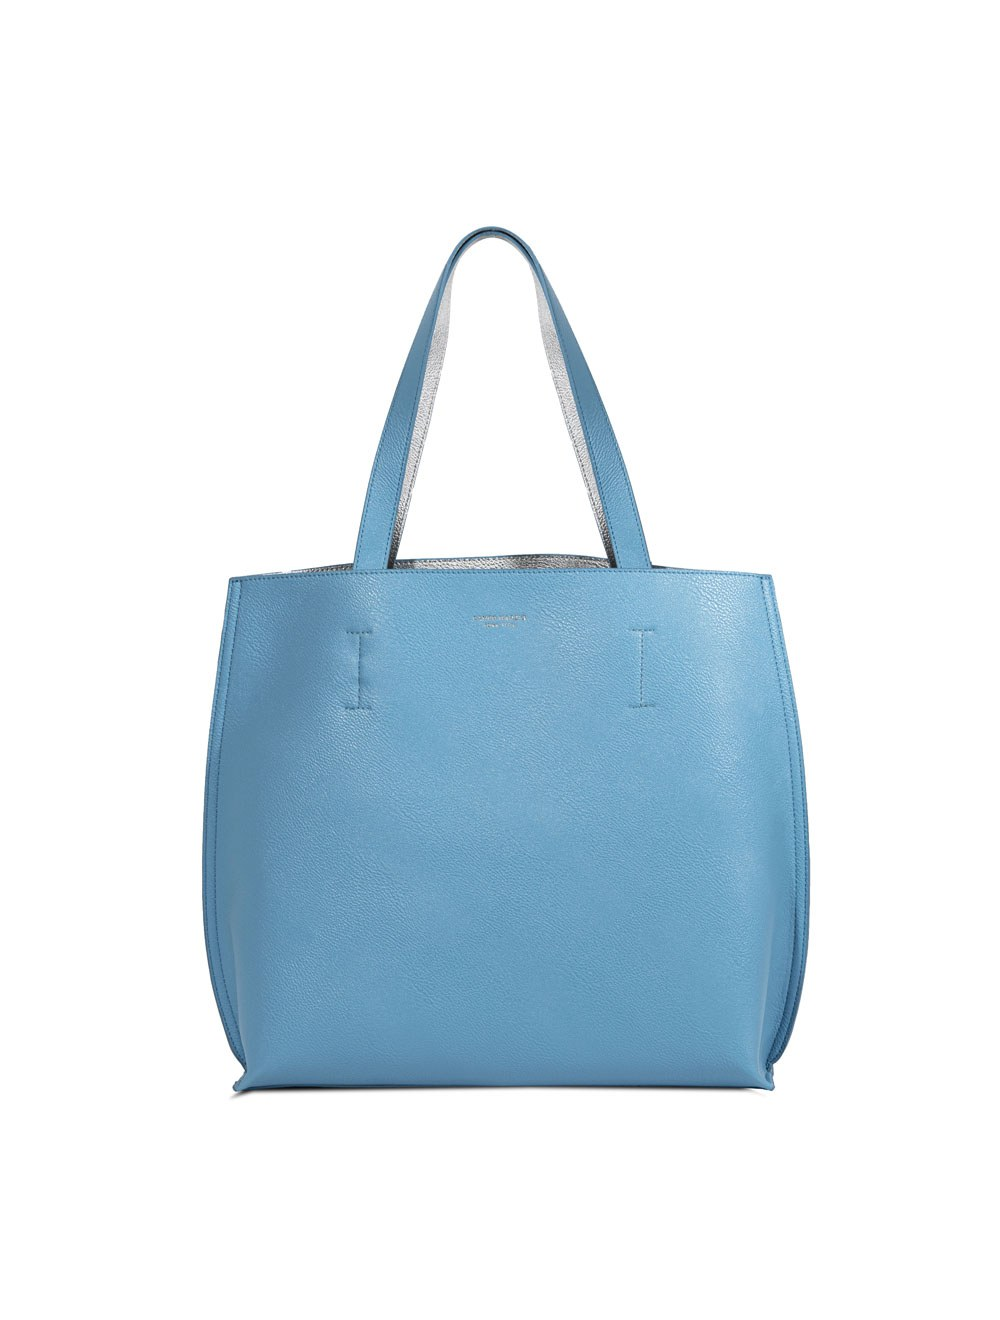 Double Tote Bag - Turquoise Blue